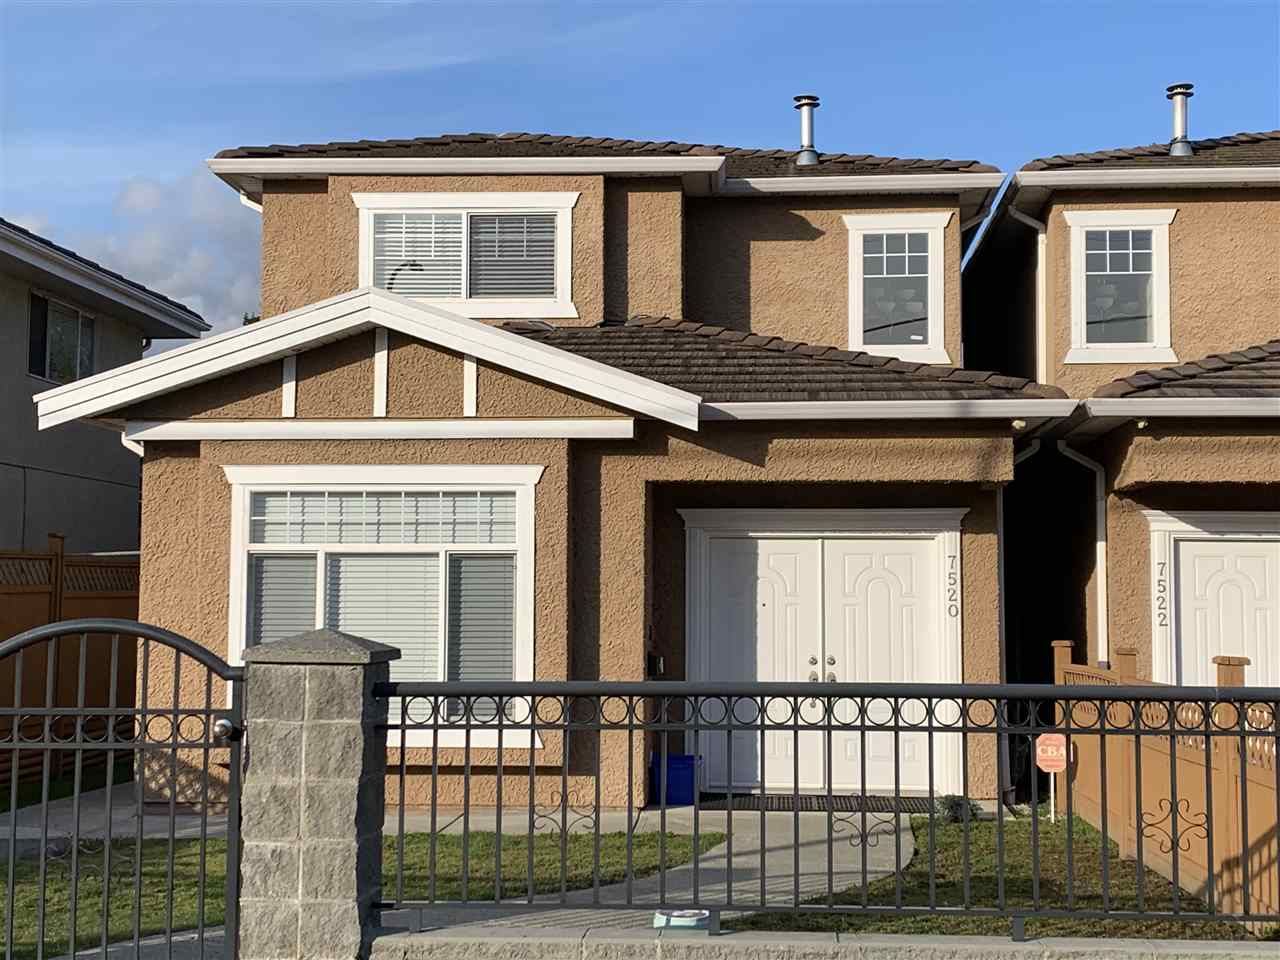 one owner home, like new in and out. real hard wood staircase , radiant floor heating and granite flooring in kitchen and bathroom, all granite counter tops in all bathrooms, jacuzzi bath tub, detached garage with back lane access. independent one bedroom suite downstairs.